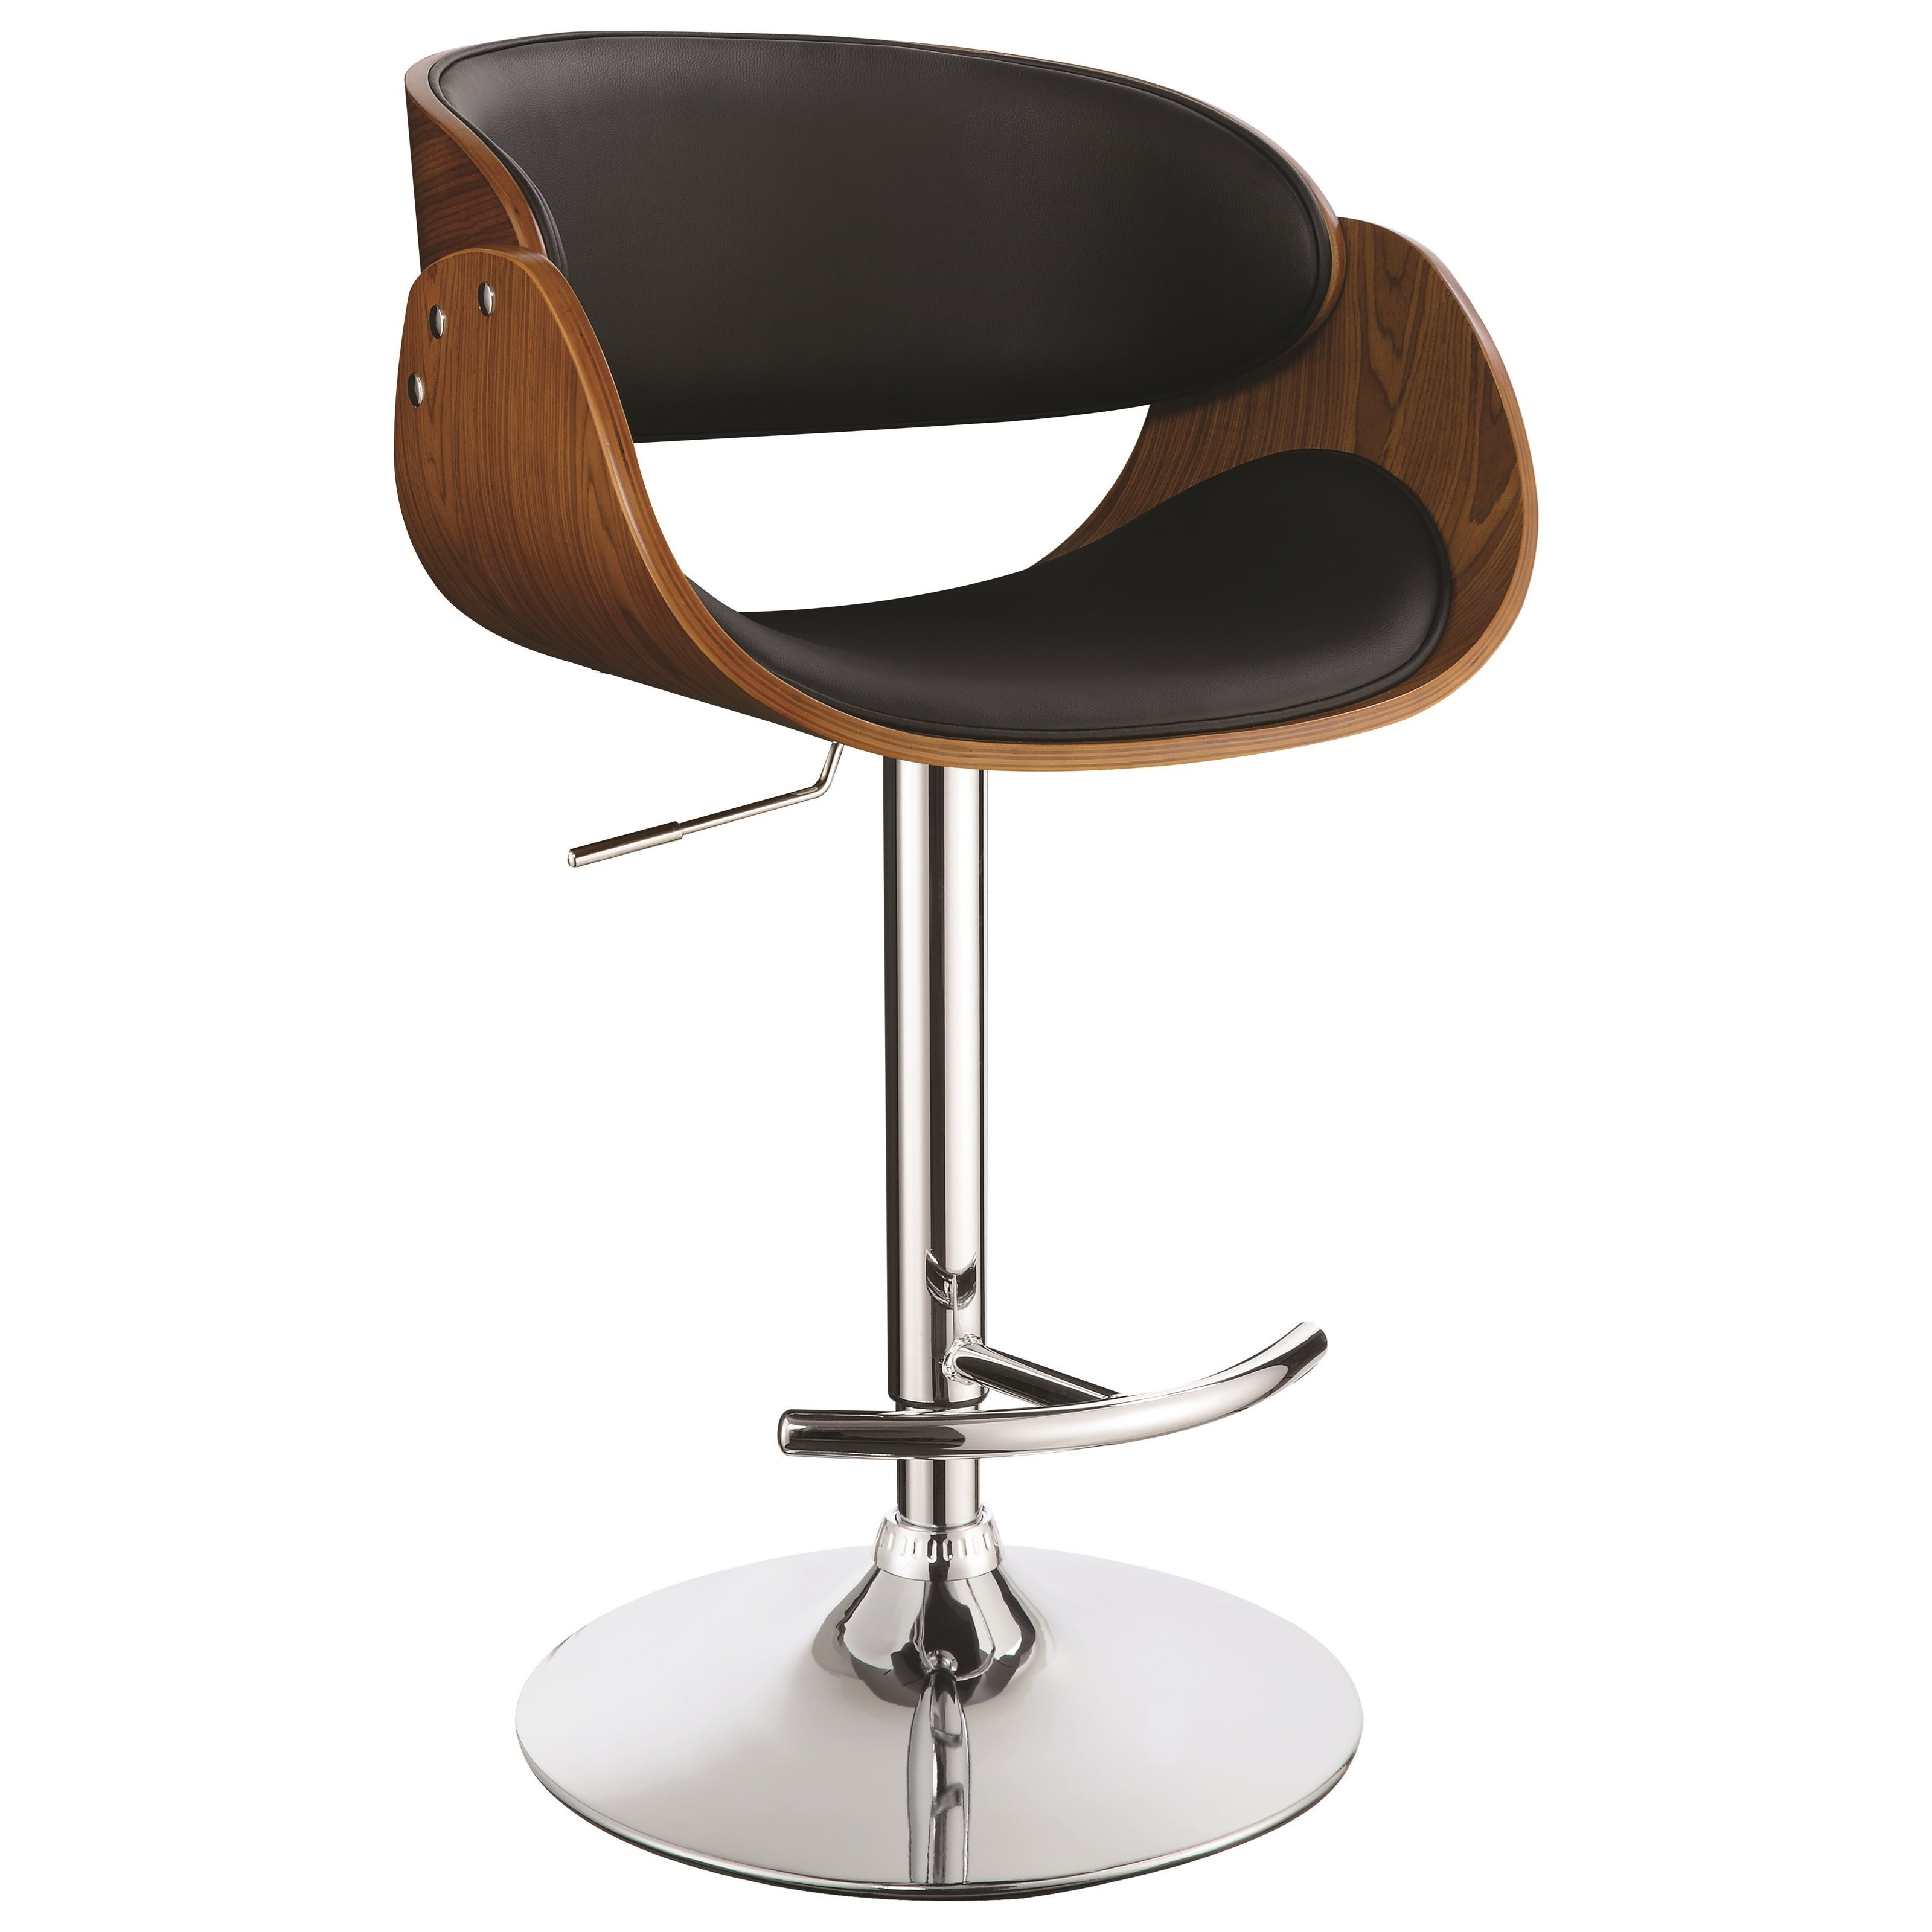 Bar Stool Chairs Dining Chairs And Bar Stools Contemporary Adjustable Bar Stool By Coaster At Dunk Bright Furniture